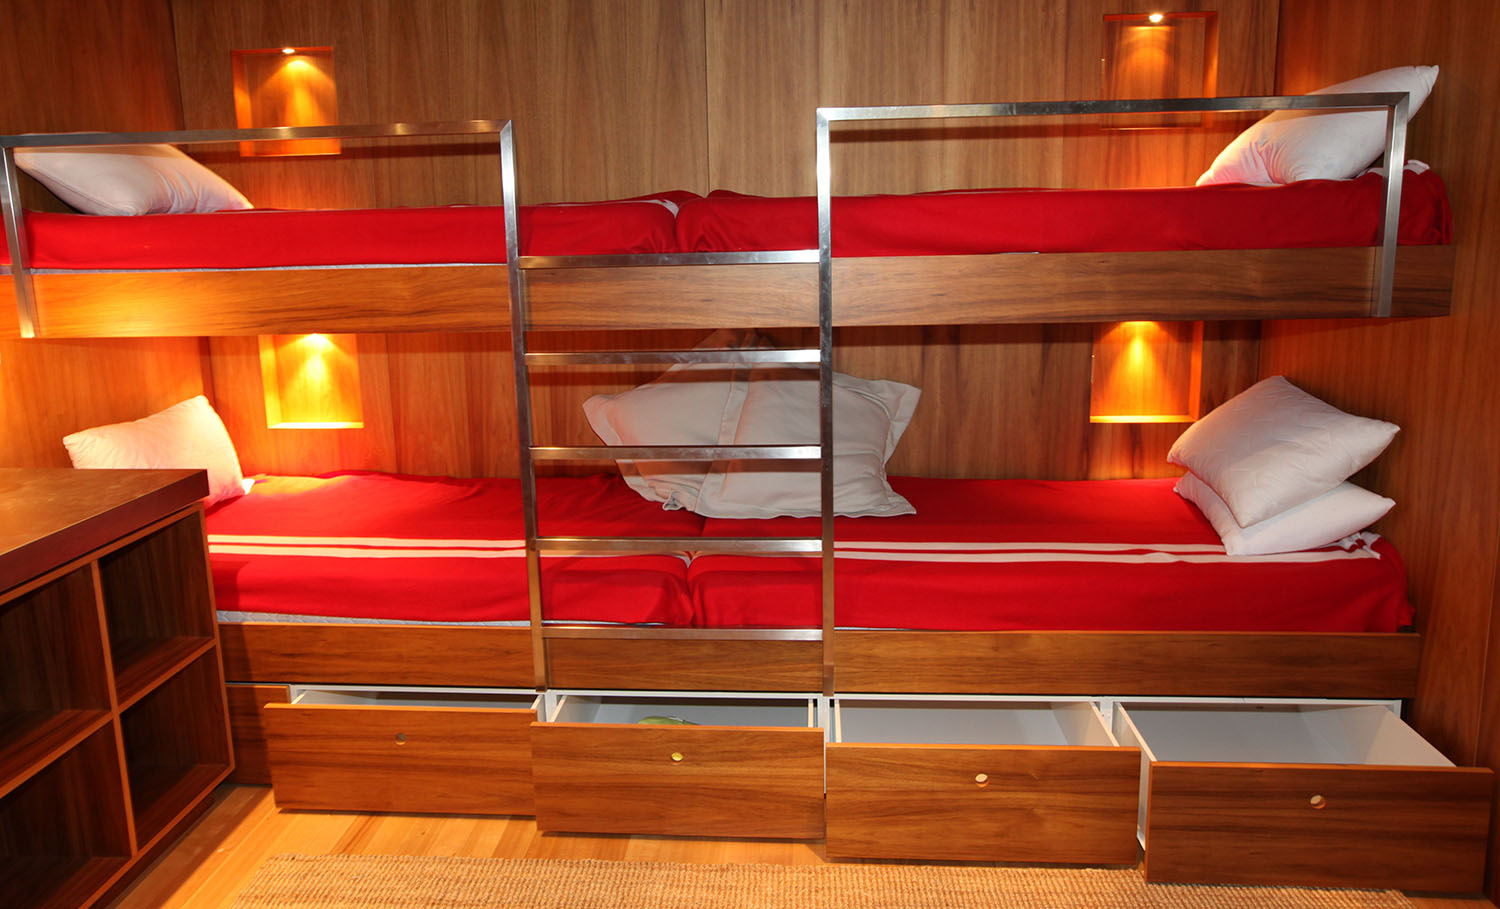 Australian Blackwood bunks with drawers at a holiday home